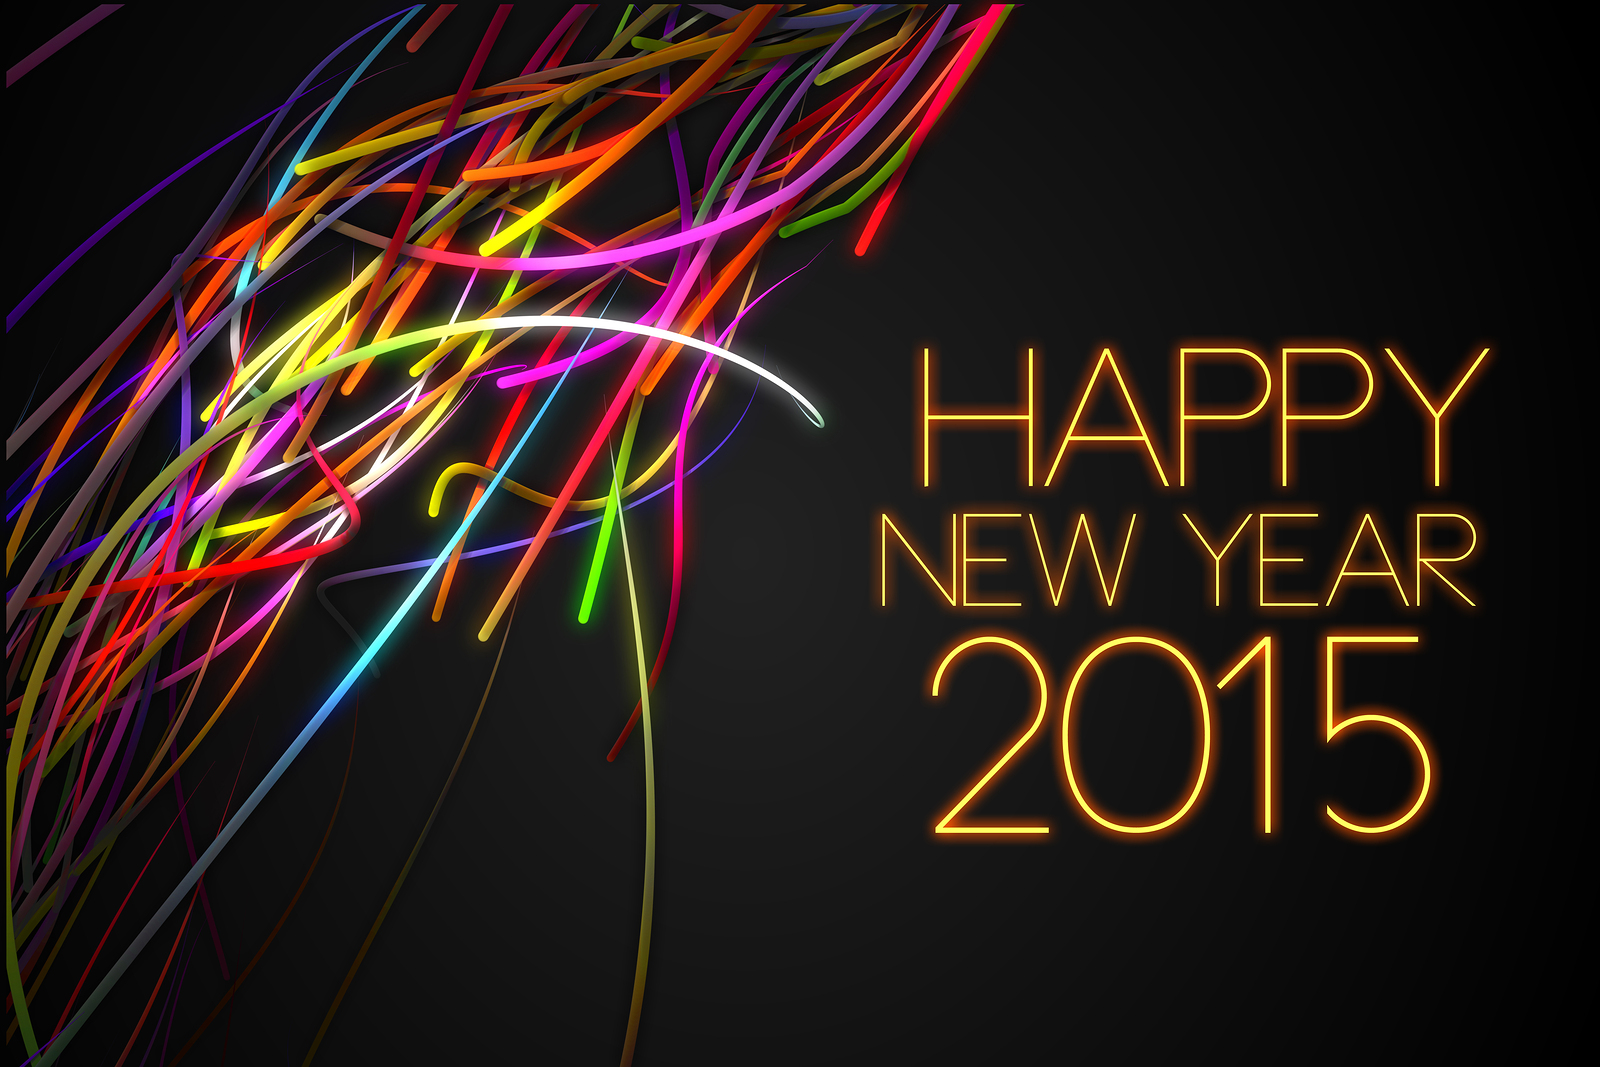 Happy New Year 2015 Images Photos